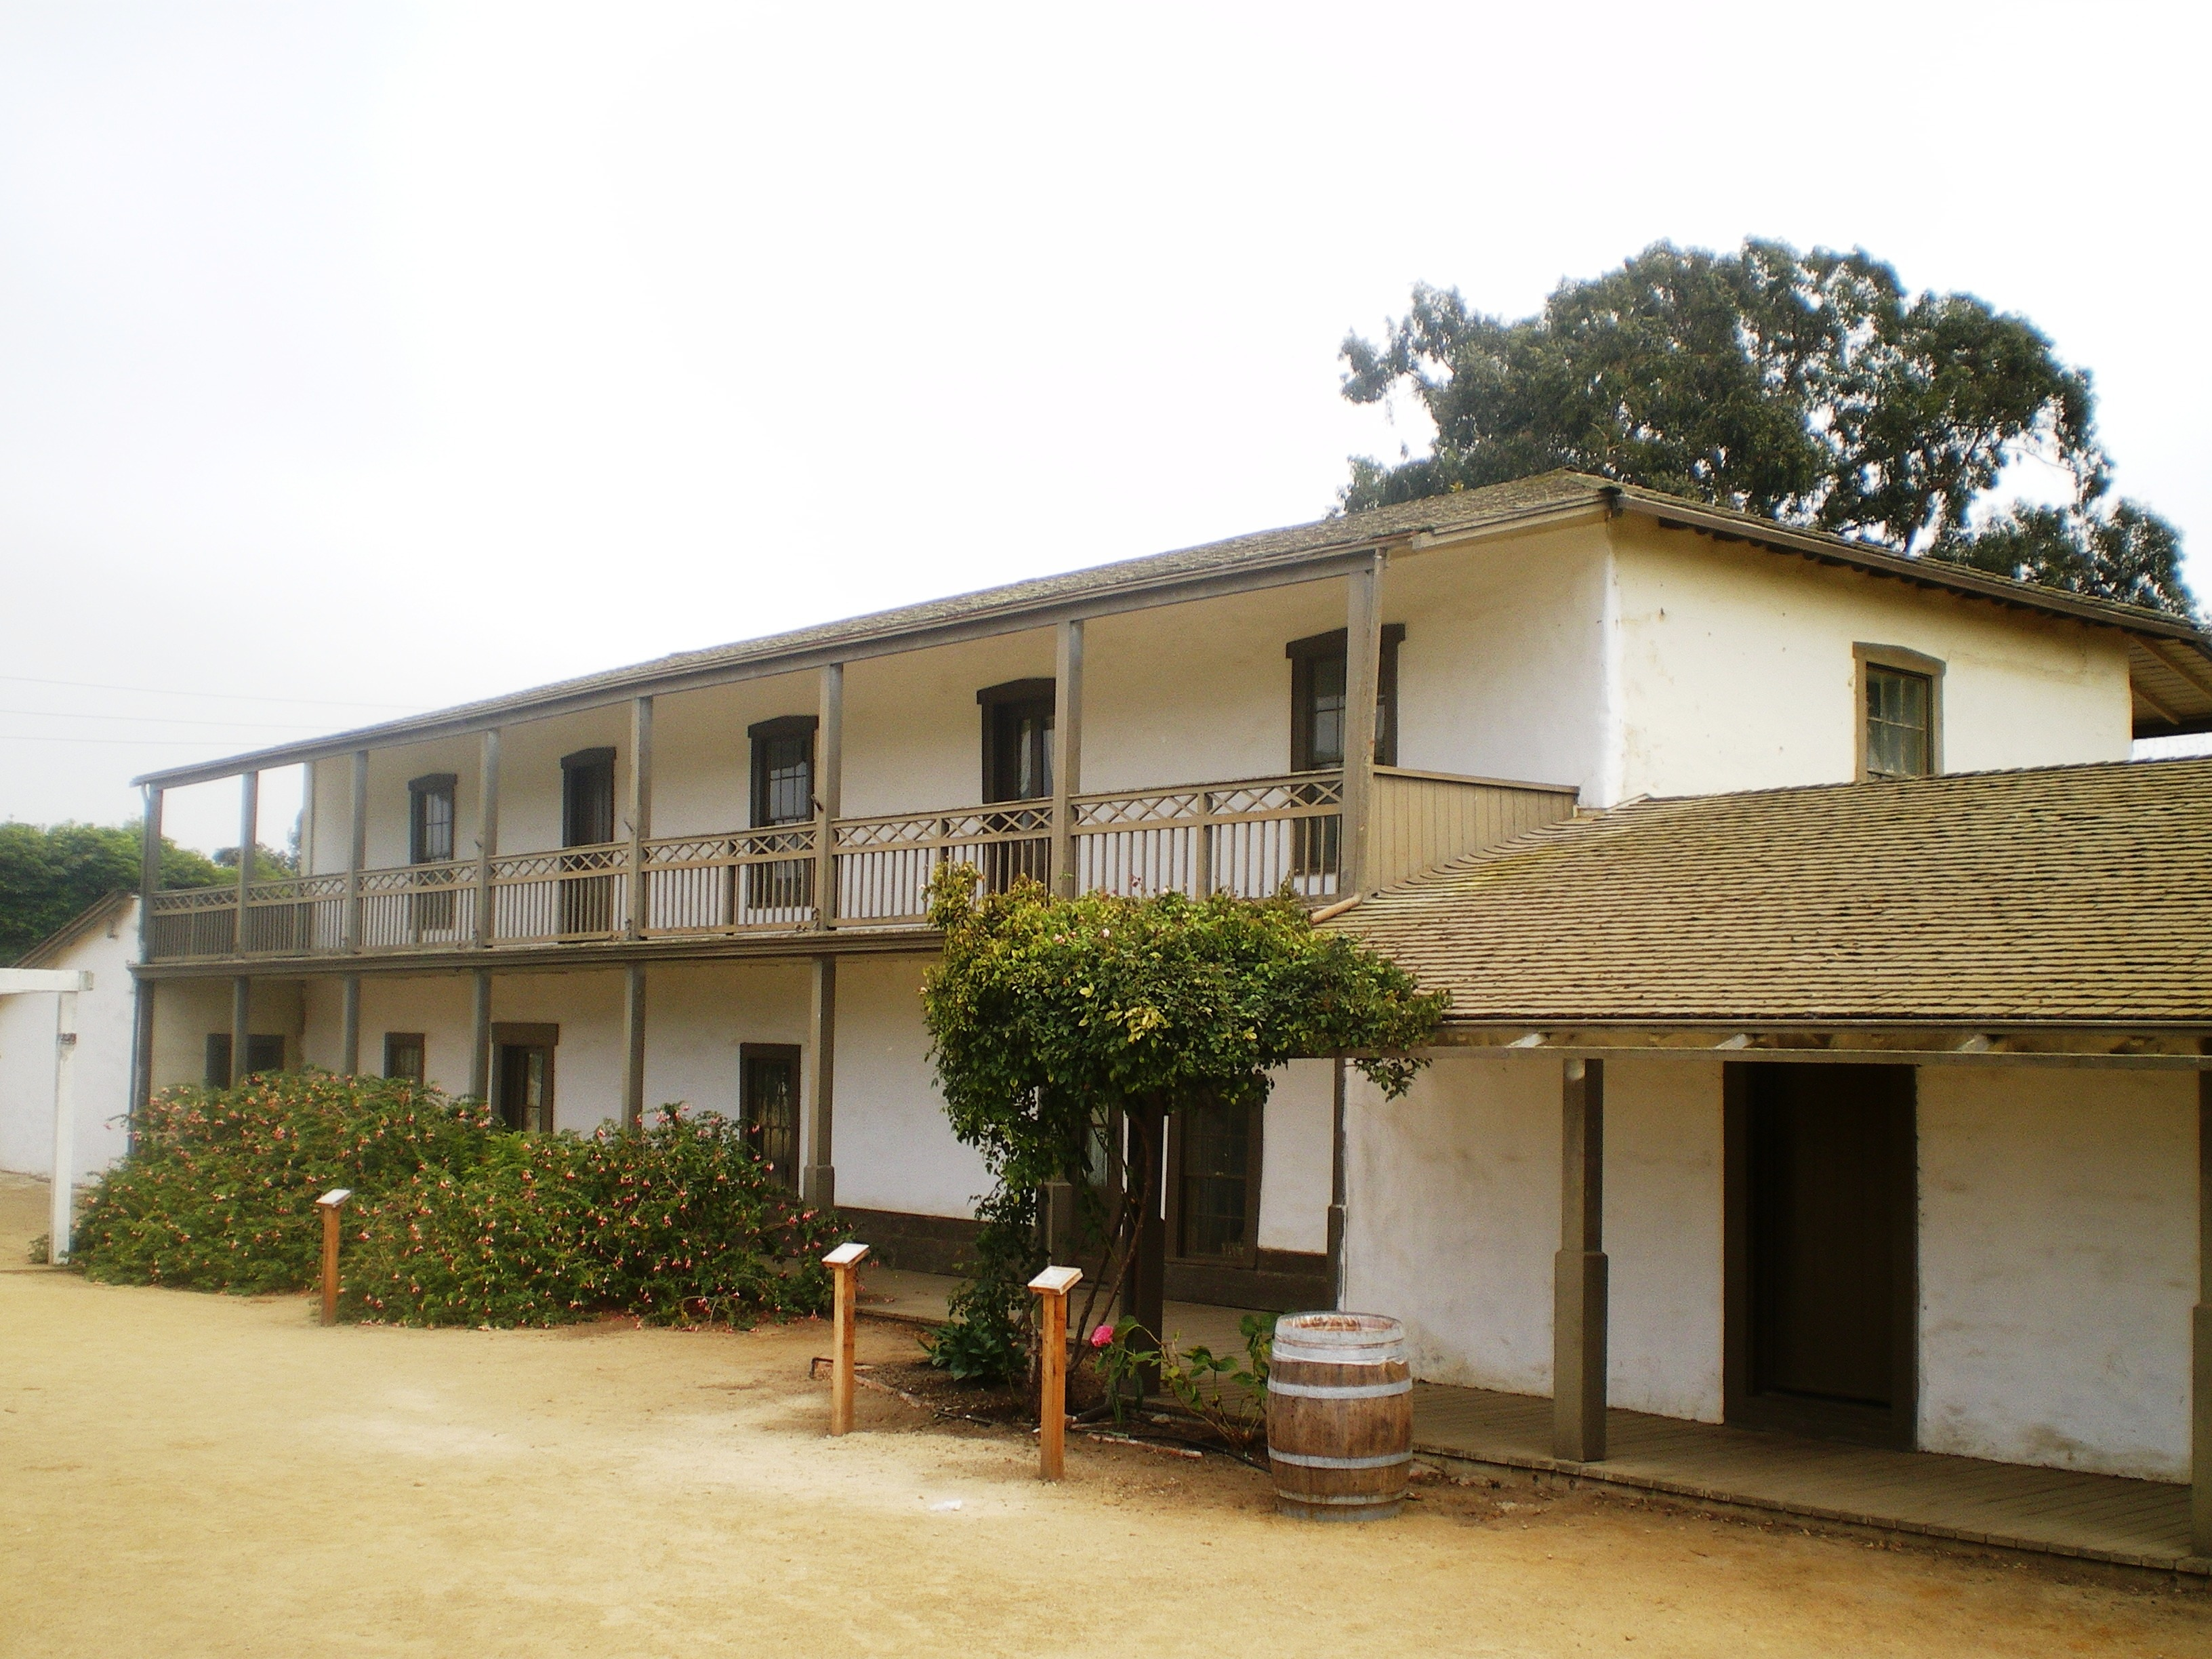 Olivas Adobe Wikipedia